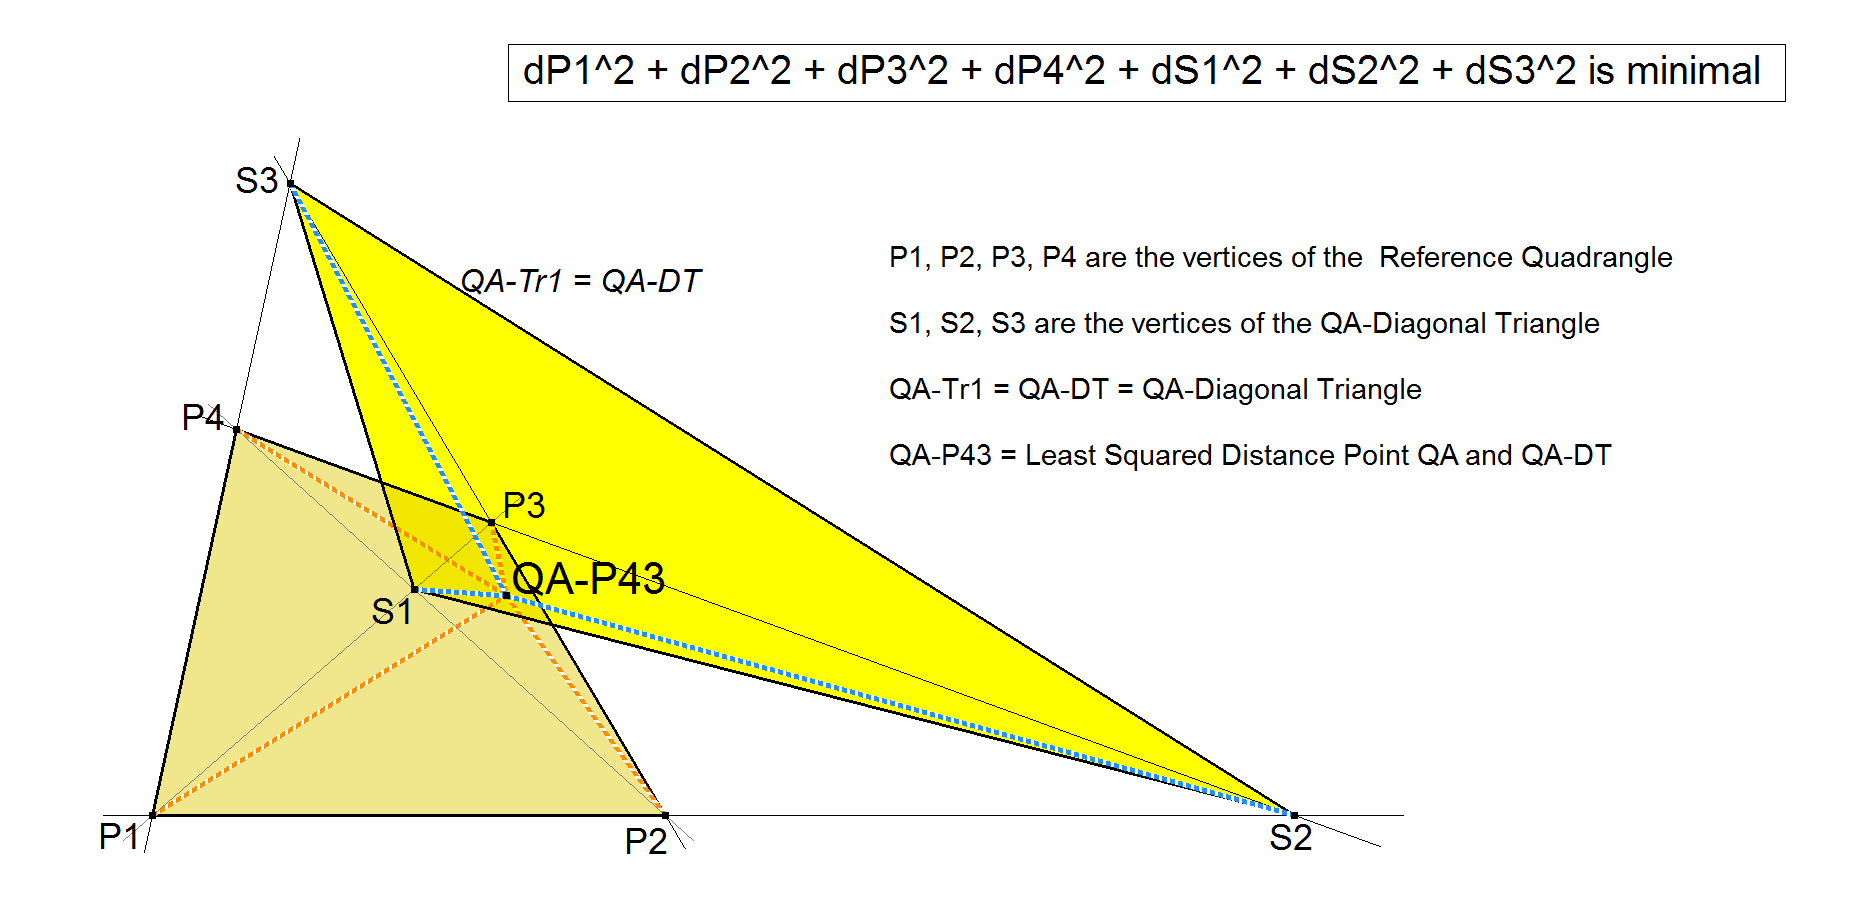 QA-P43-LSD-point-QA-and-QA-DT-00